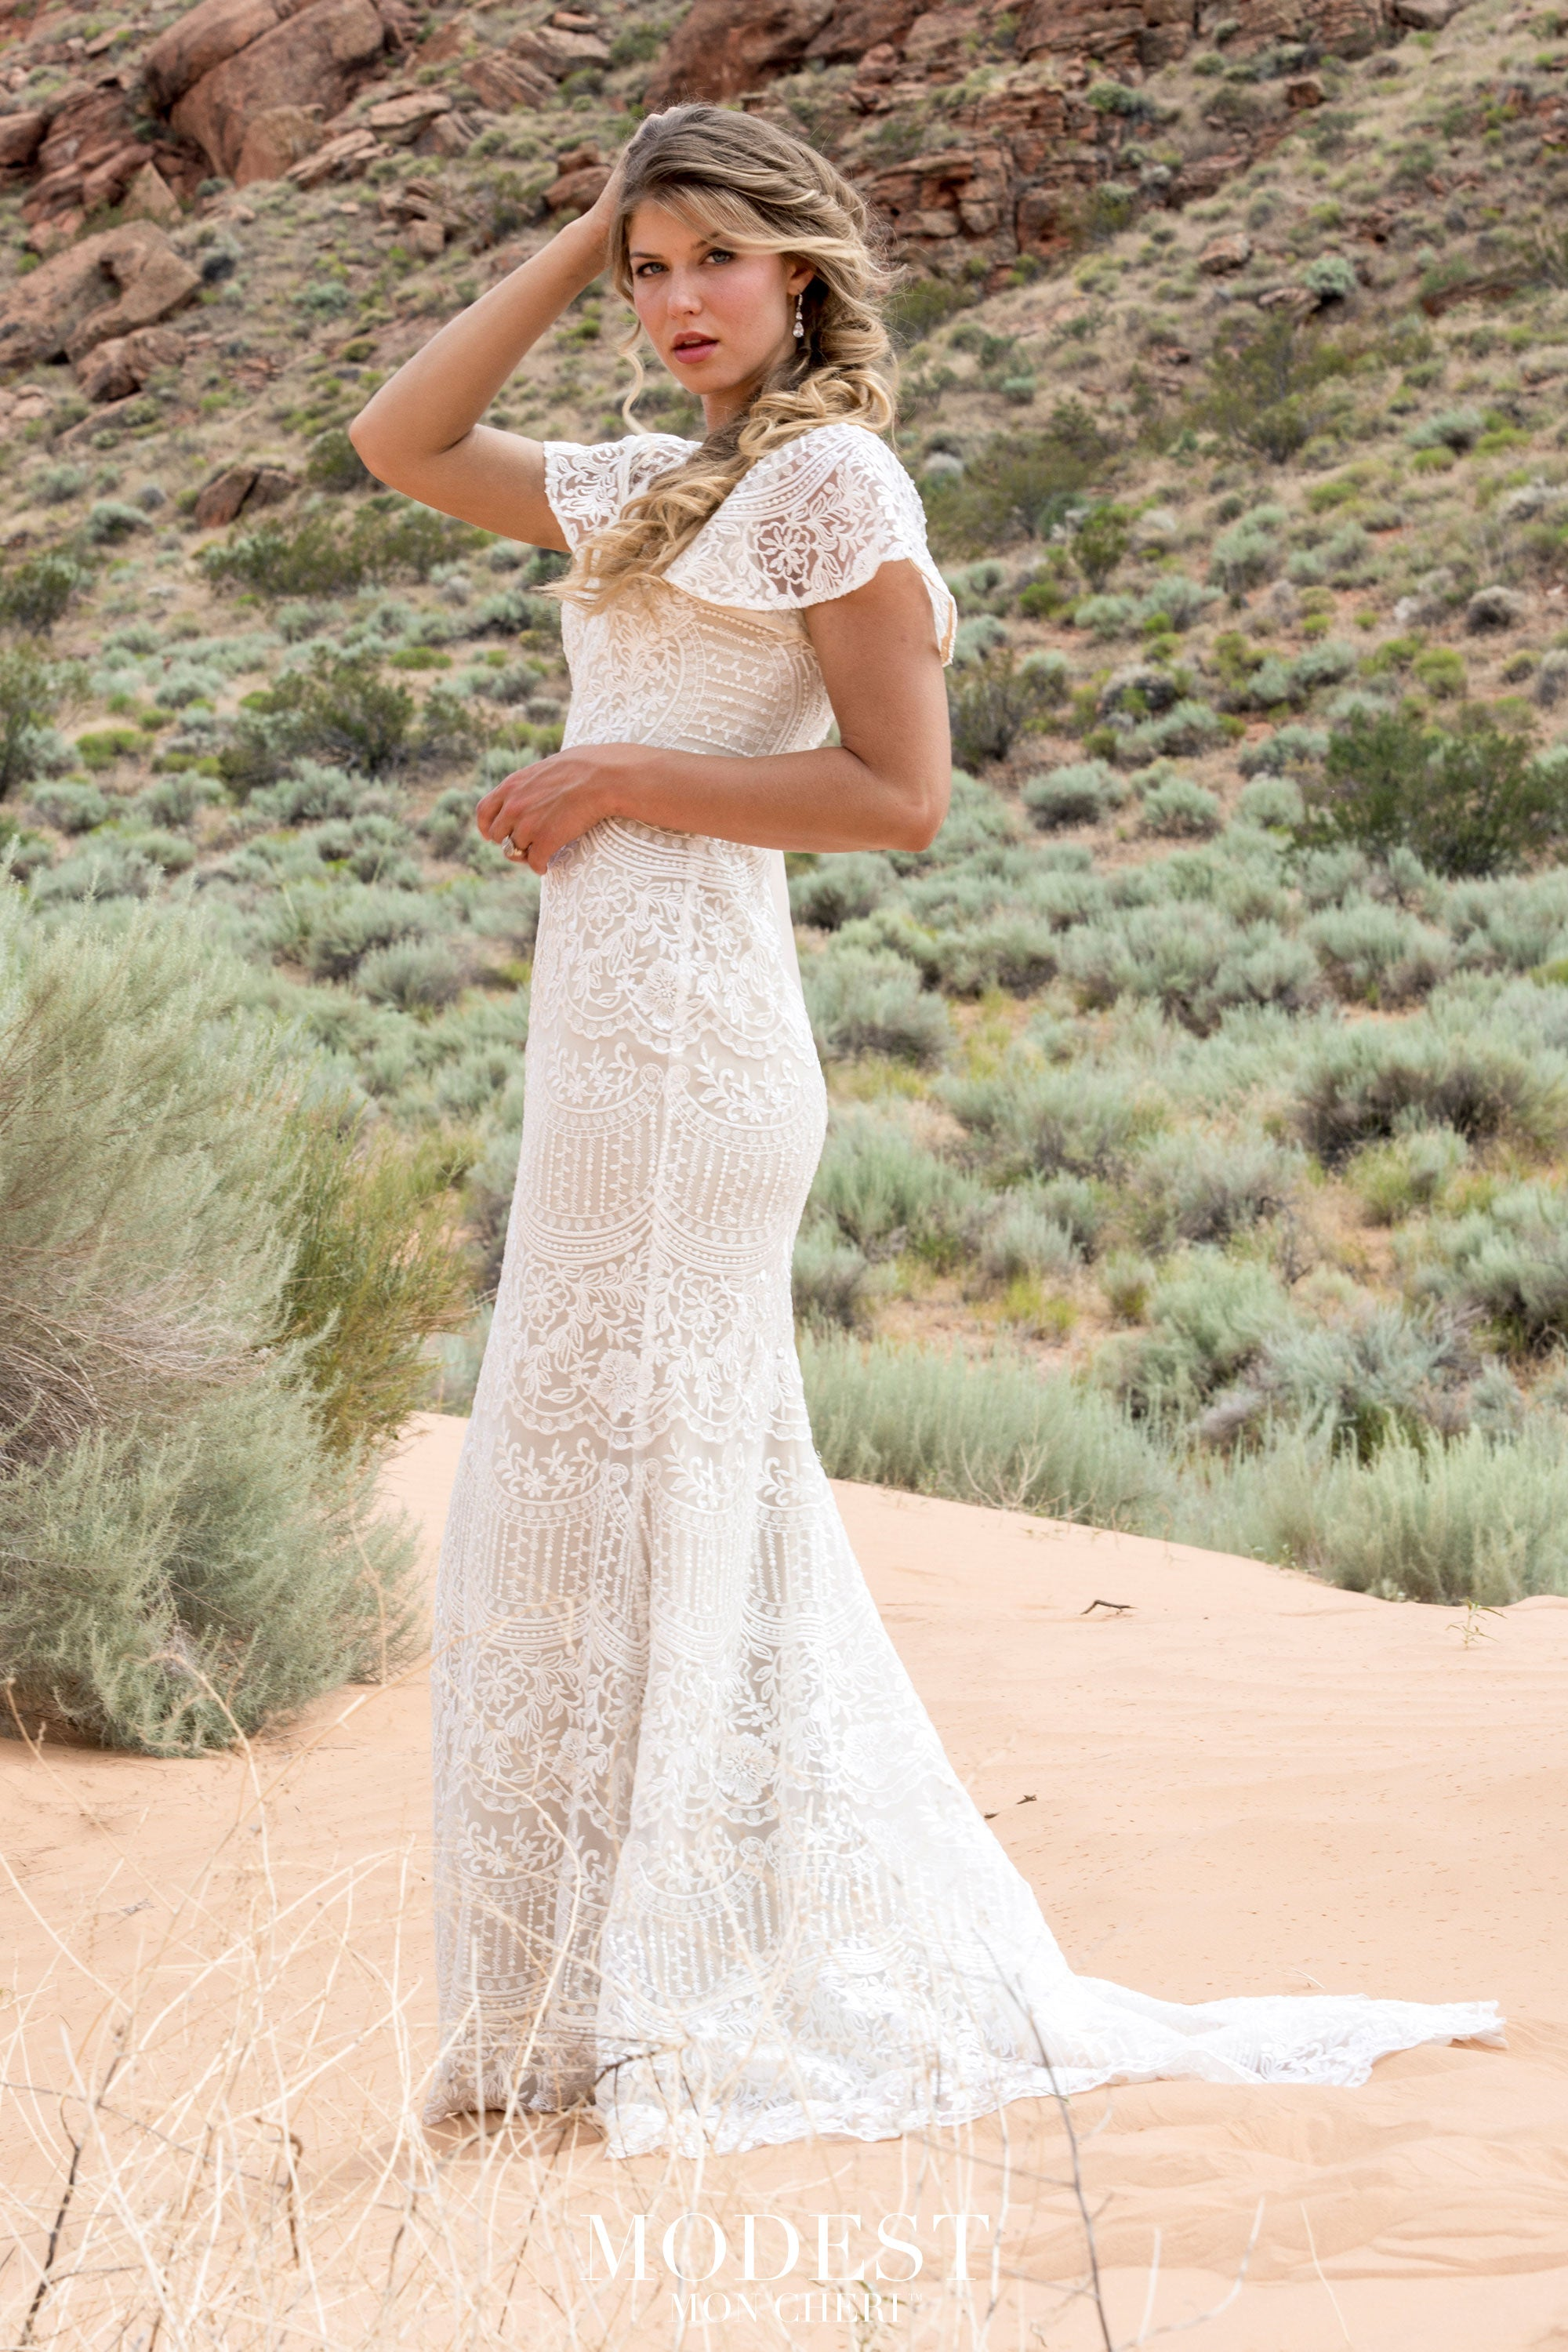 TR12030 Lace Modest Wedding Dress with flutter sleeves A-Line great for plus size brides Boho design side view